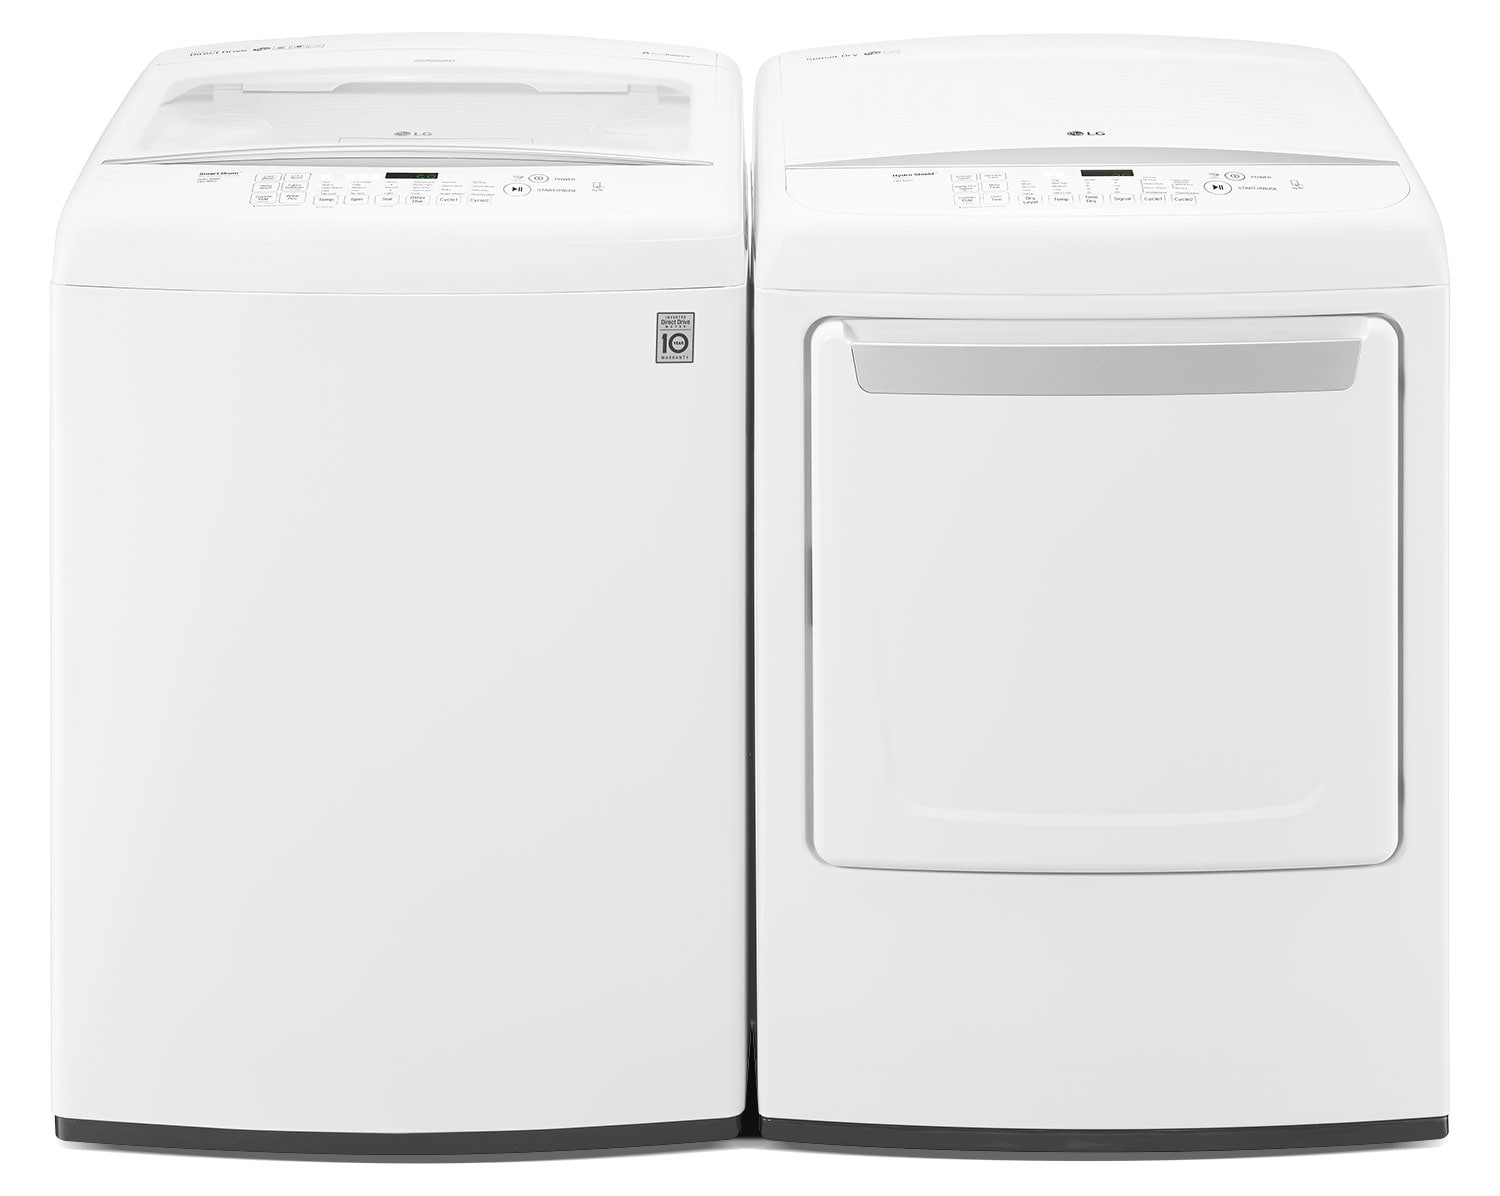 Washers and Dryers - LG 5.2 Cu. Ft. High-Efficiency Top-Load Washer and 7.3 Cu. Ft. Electric Dryer – White